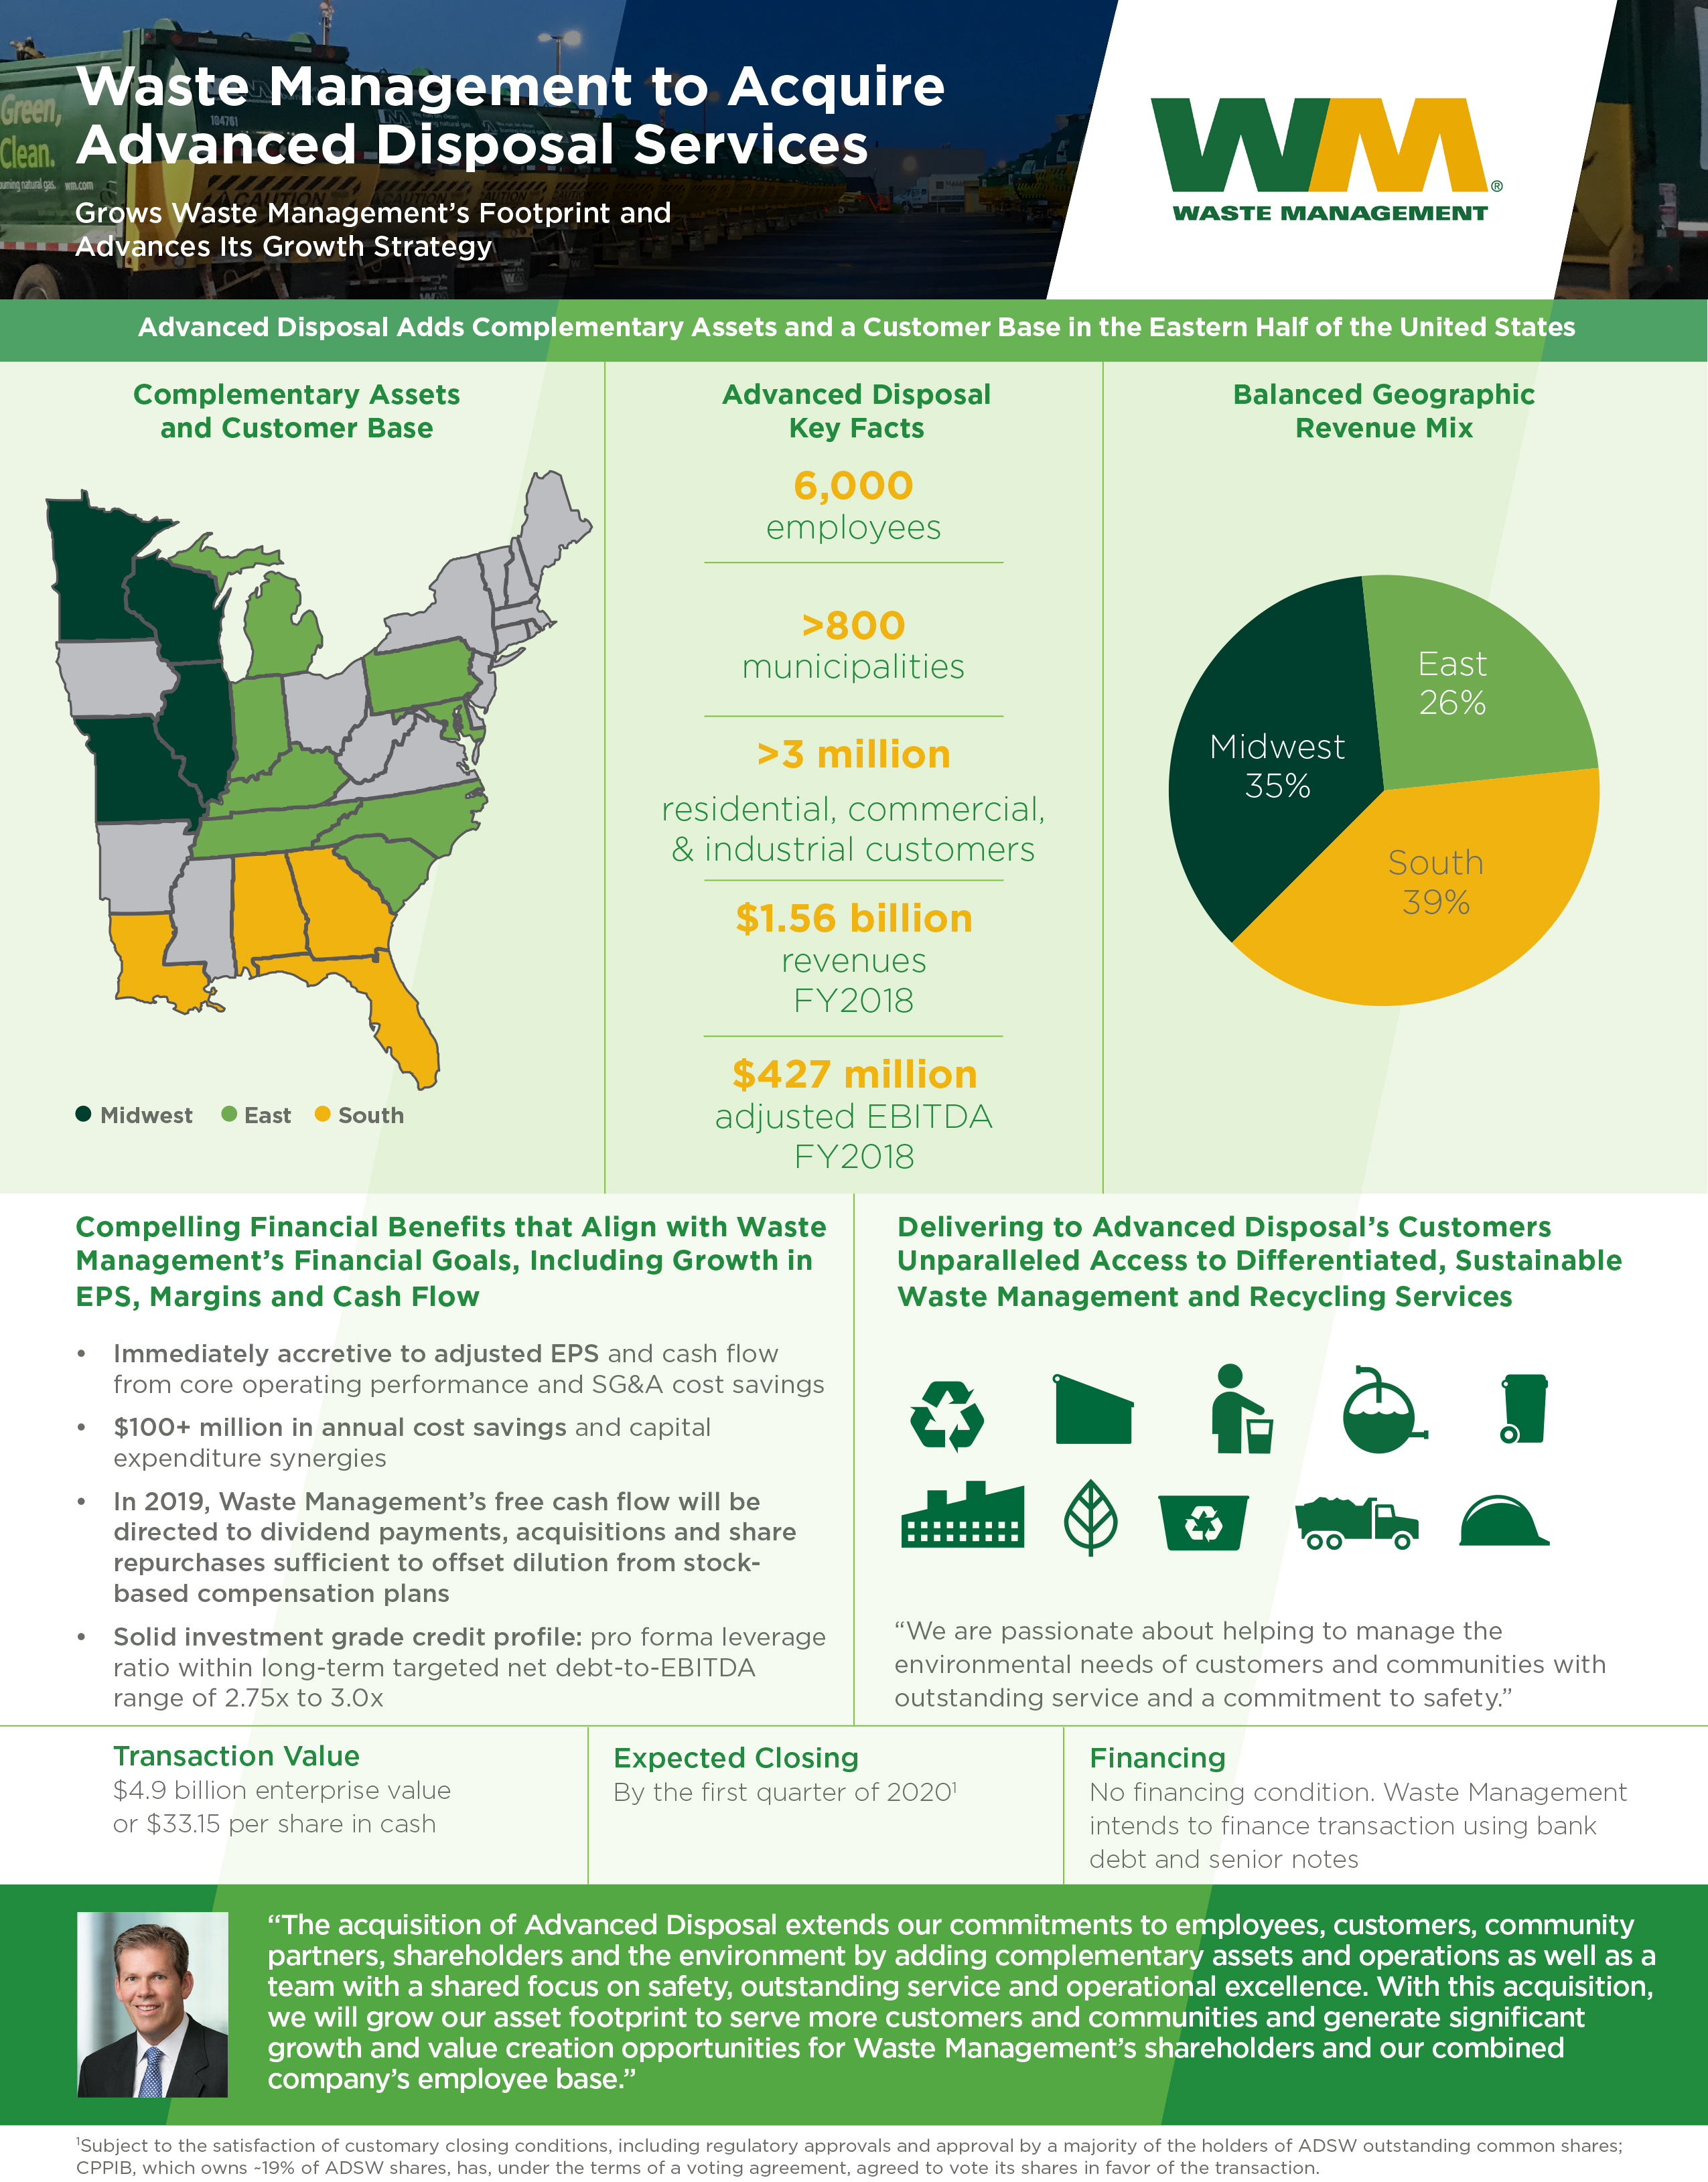 Advanced Disposal Holiday Schedule 2020 Waste Management to Acquire Advanced Disposal for $4.9 Billion